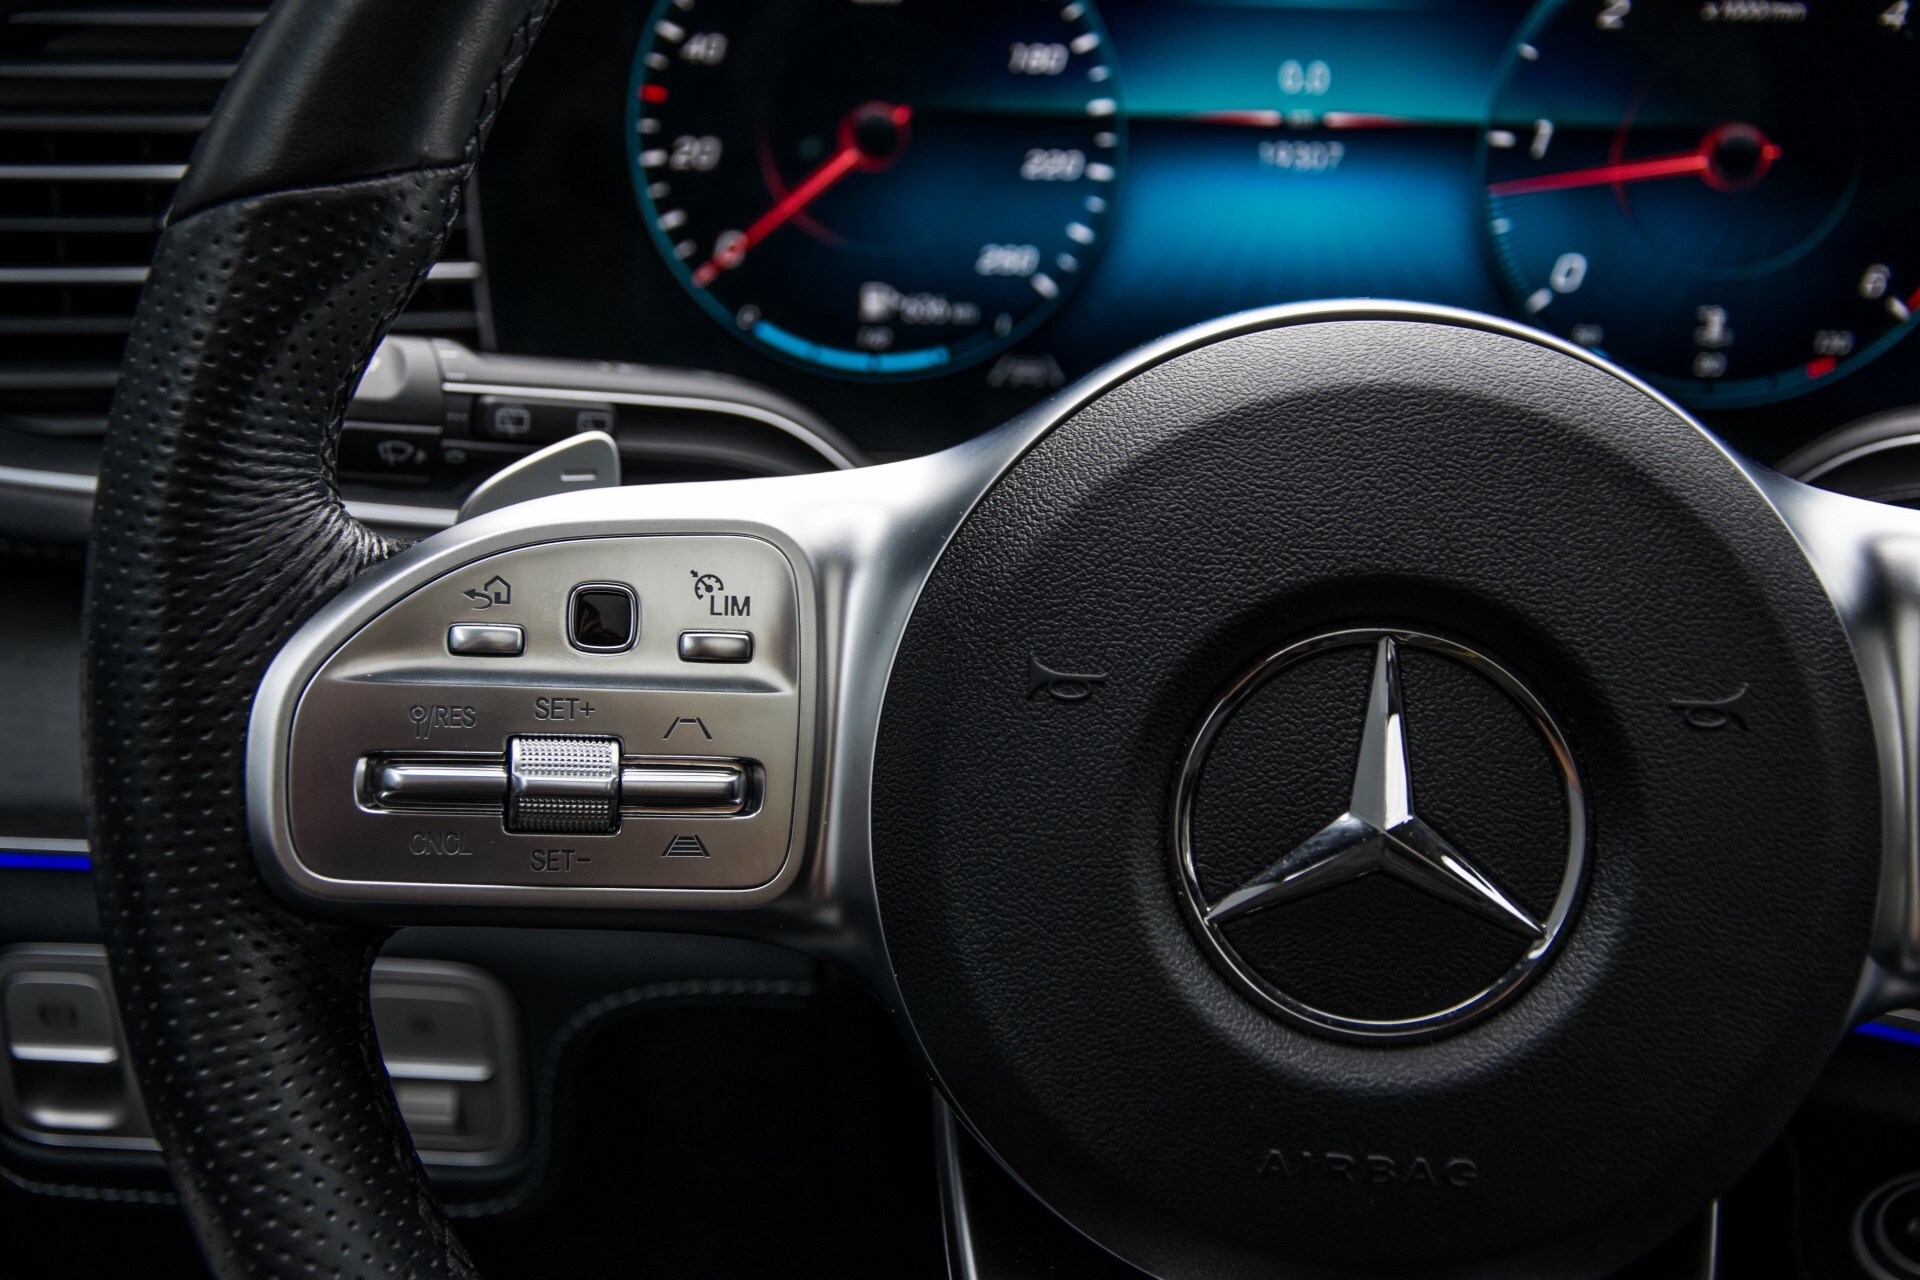 Mercedes-Benz GLE 400 d 4-M Luchtvering/Distronic/Keyless/HUD/Burmester/Nappa/360 camera/Panorama Aut9 Foto 10